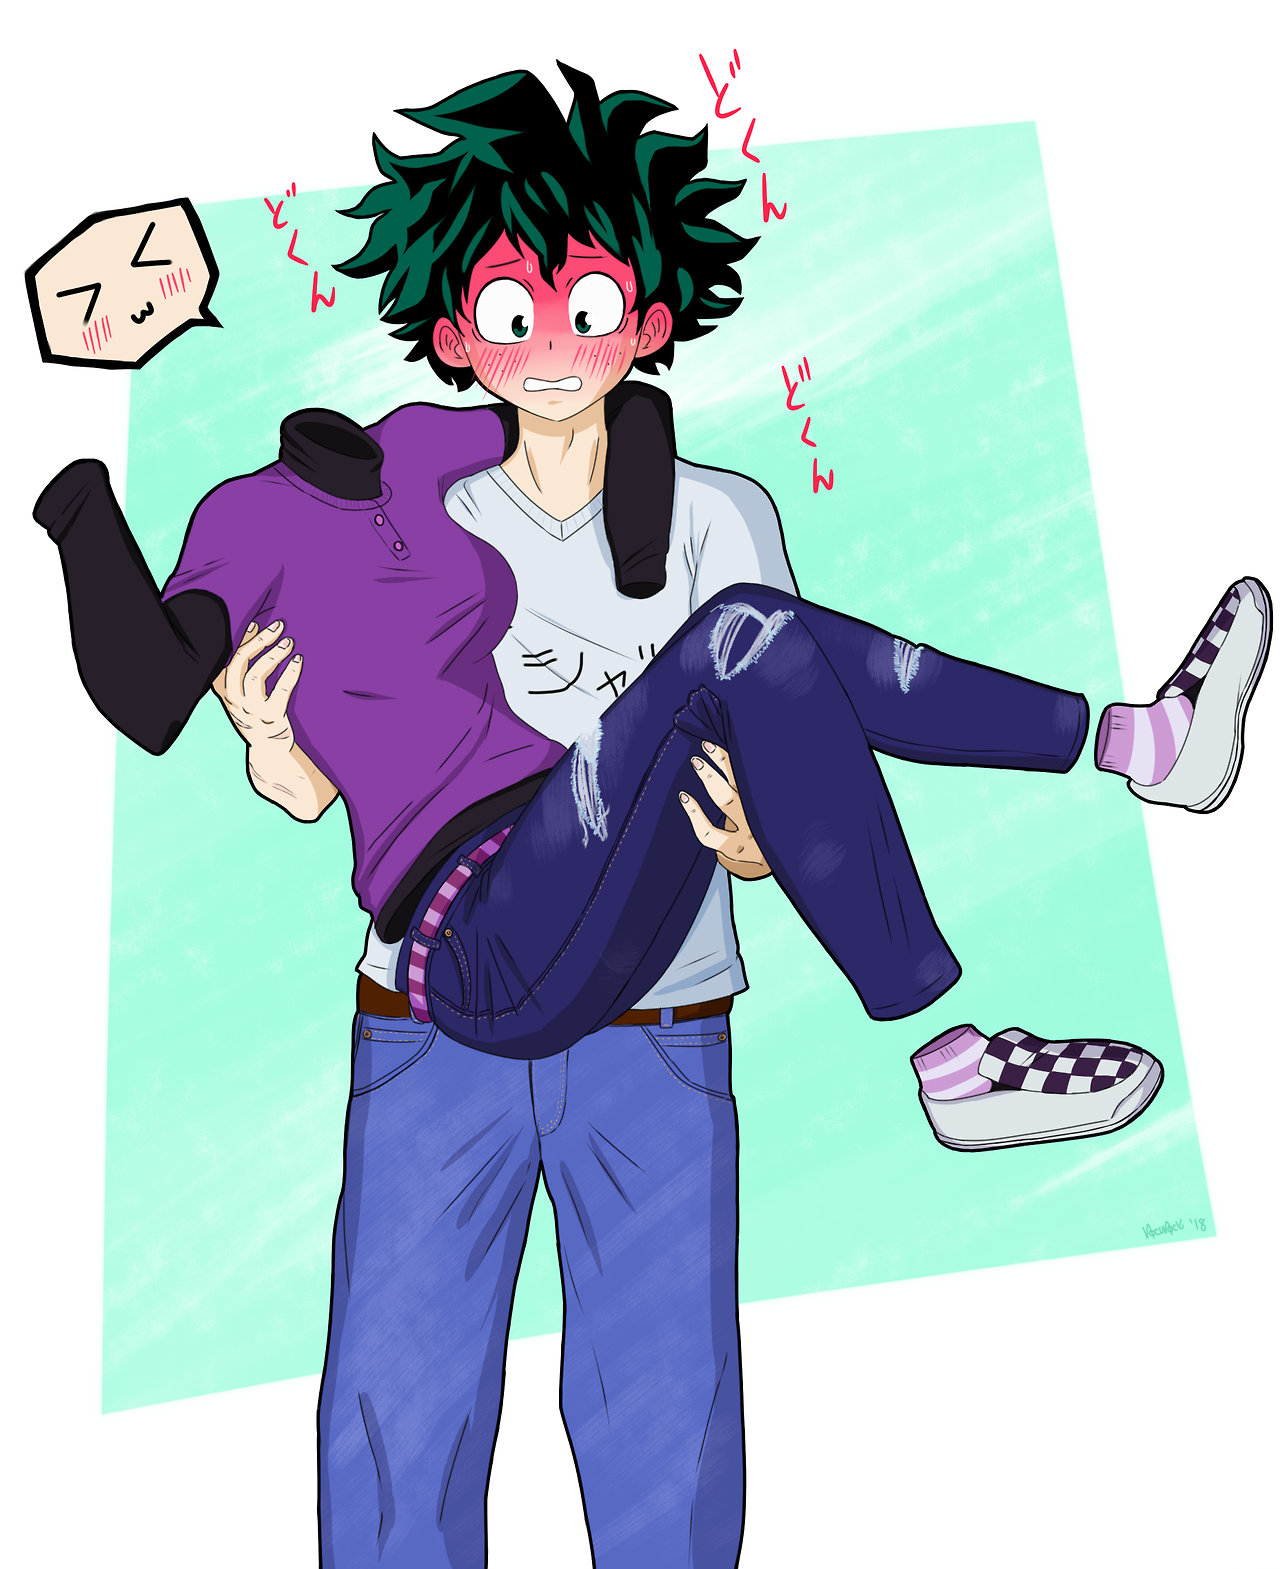 Nocunoct deku and tooru they havent even said a word to